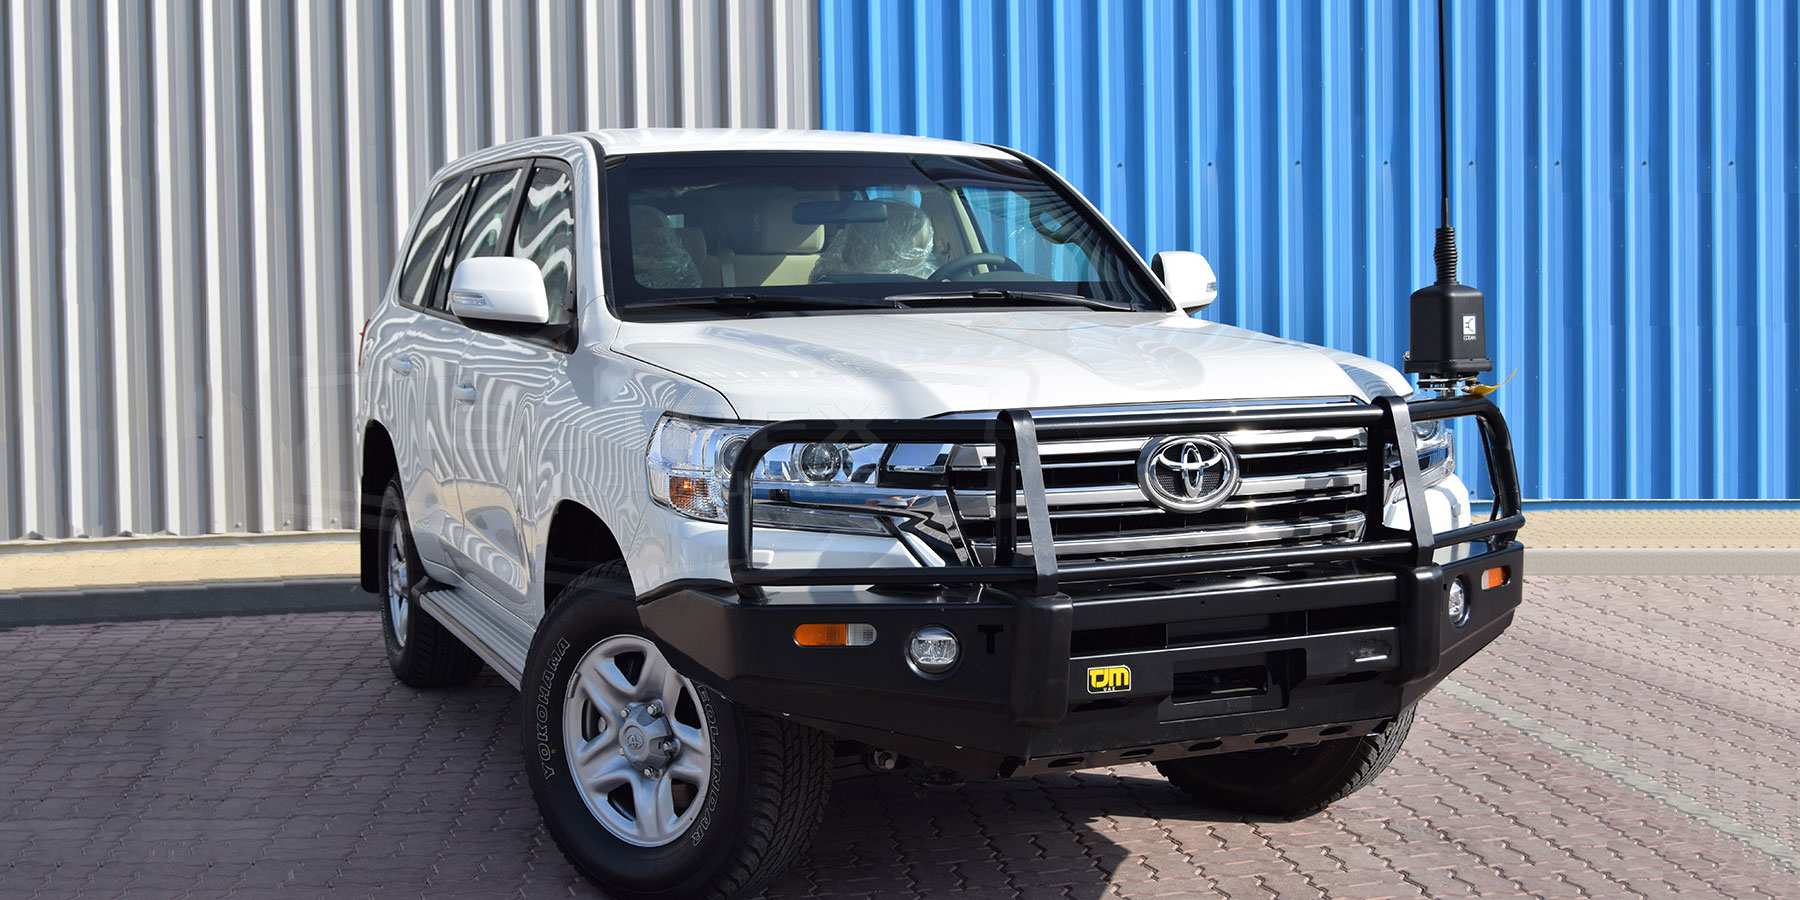 Armored Toyota Land Cruiser 200